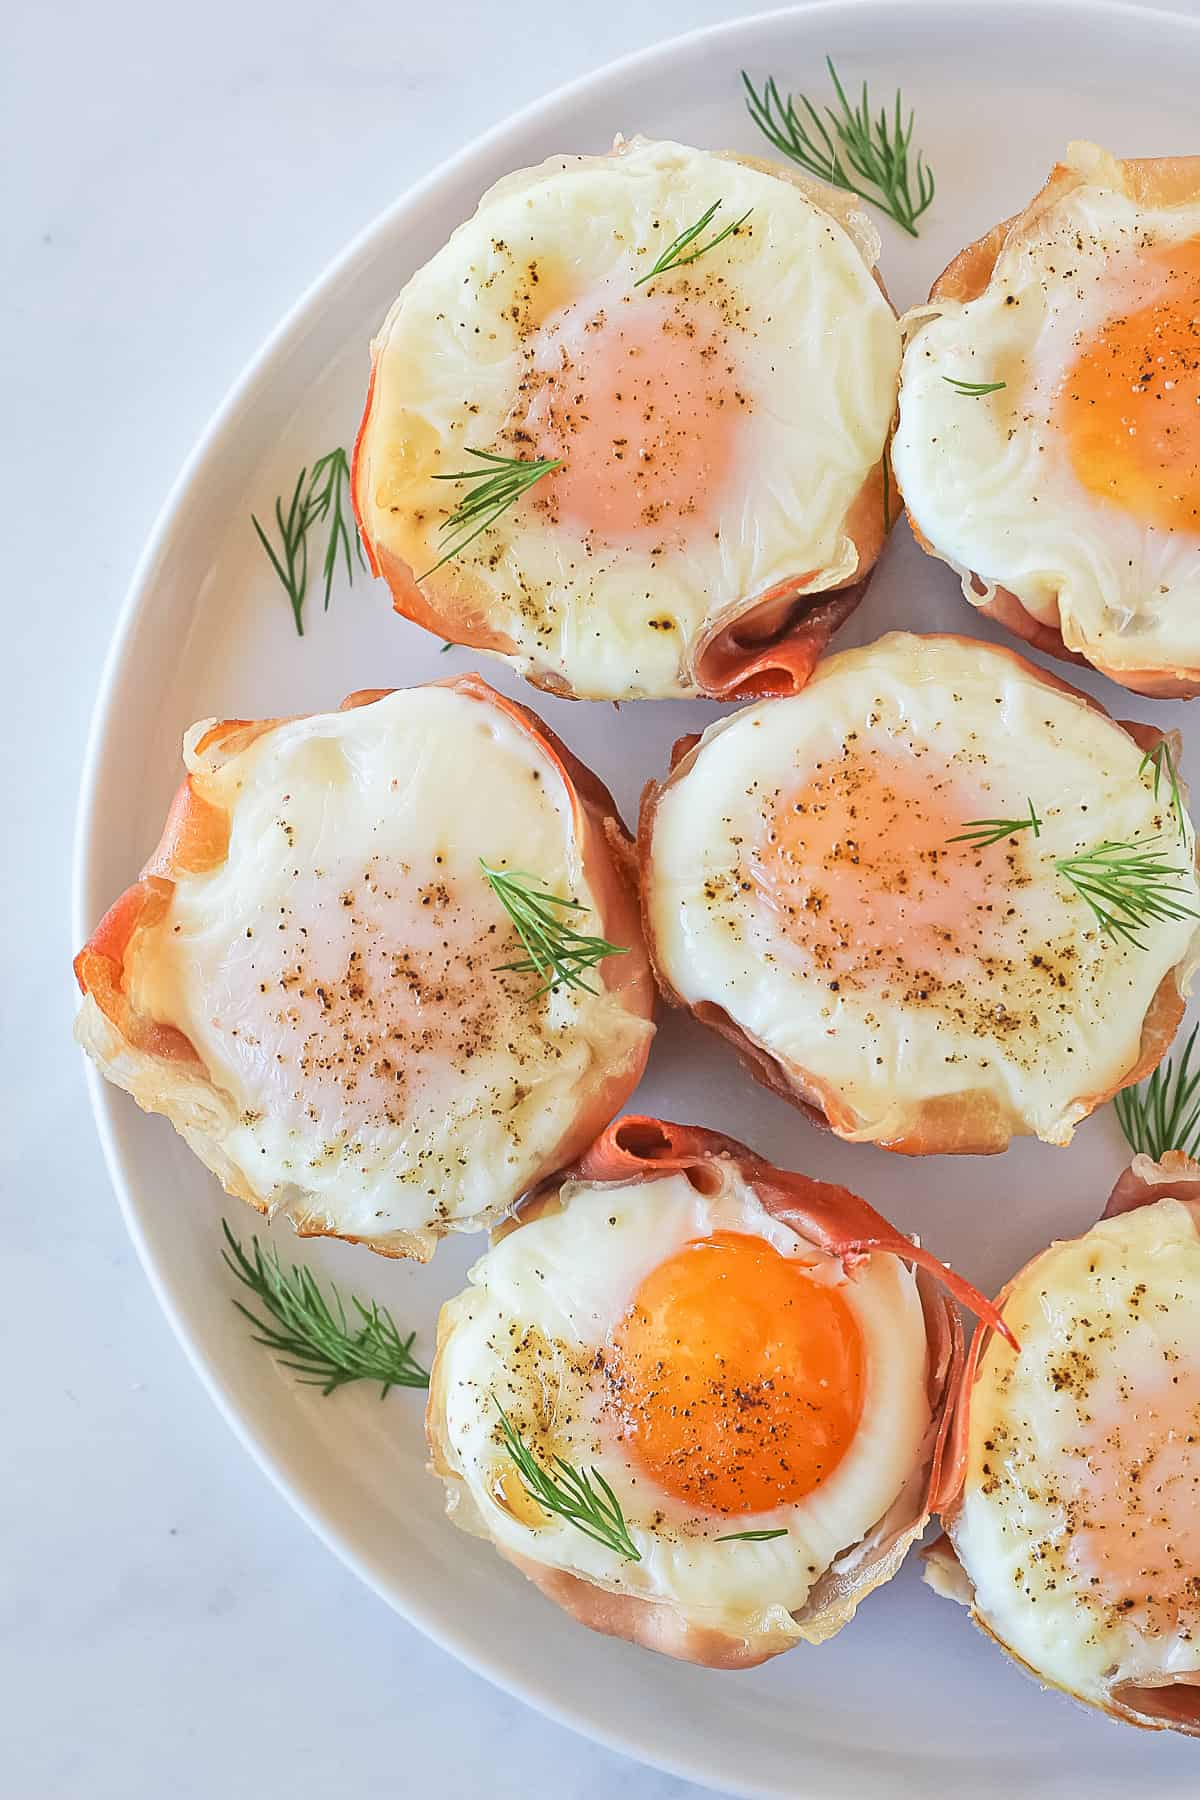 White plate with six prosciutto, spinach egg cups garnished with fresh dill.